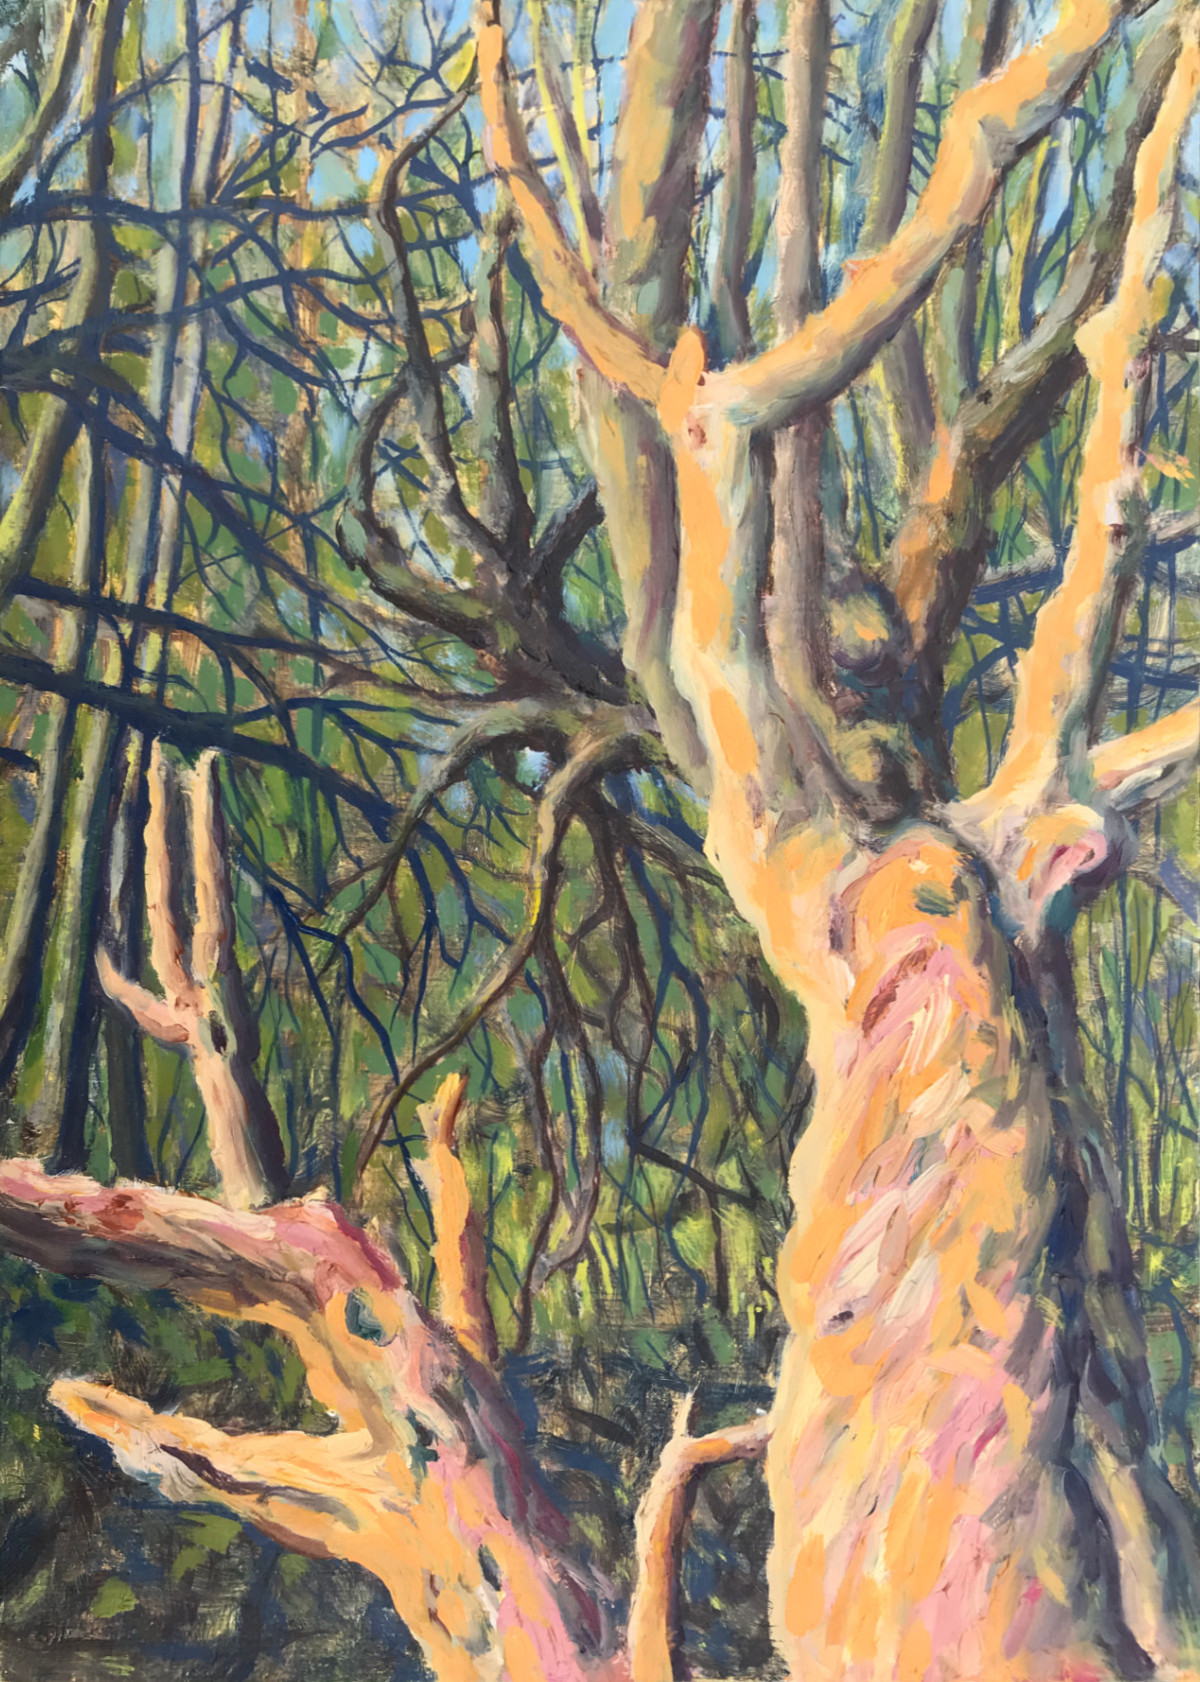 The Old Tree oil sketch